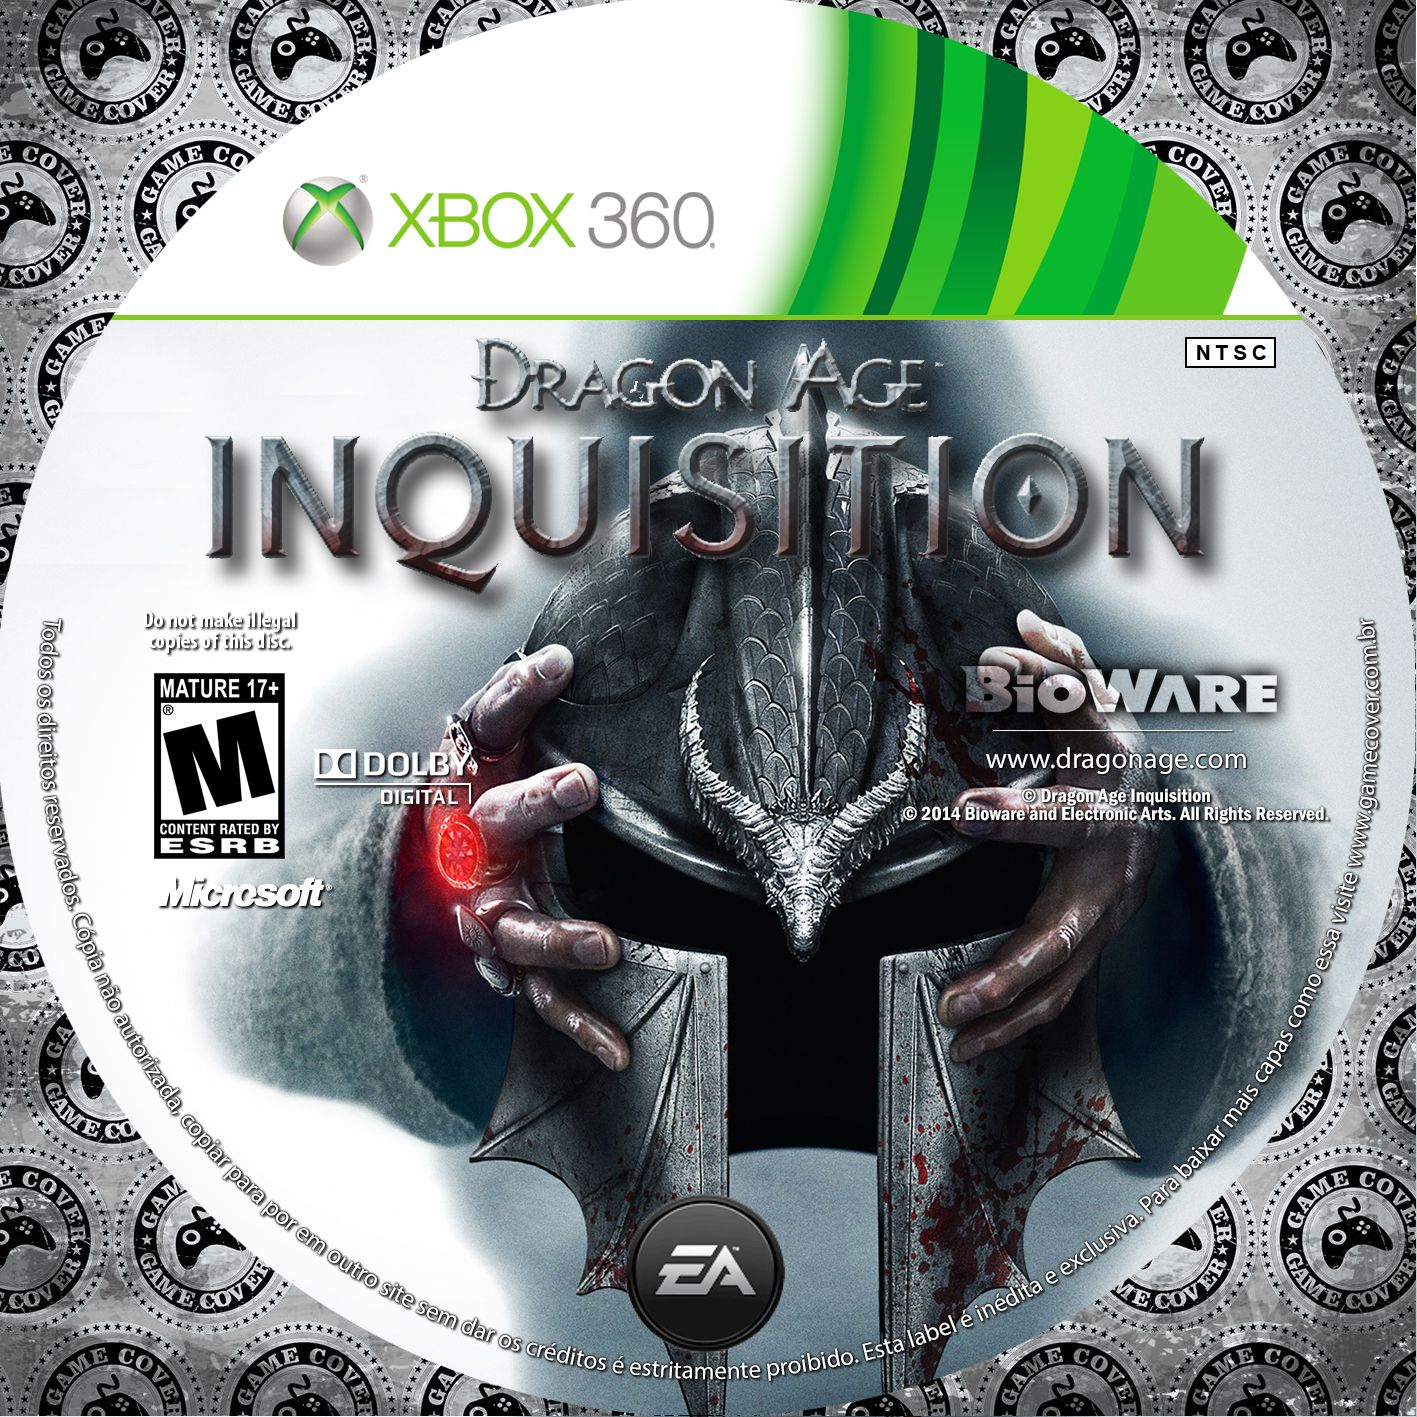 Label Dragon Age Inquisition Xbox 360 [Exclusiva]